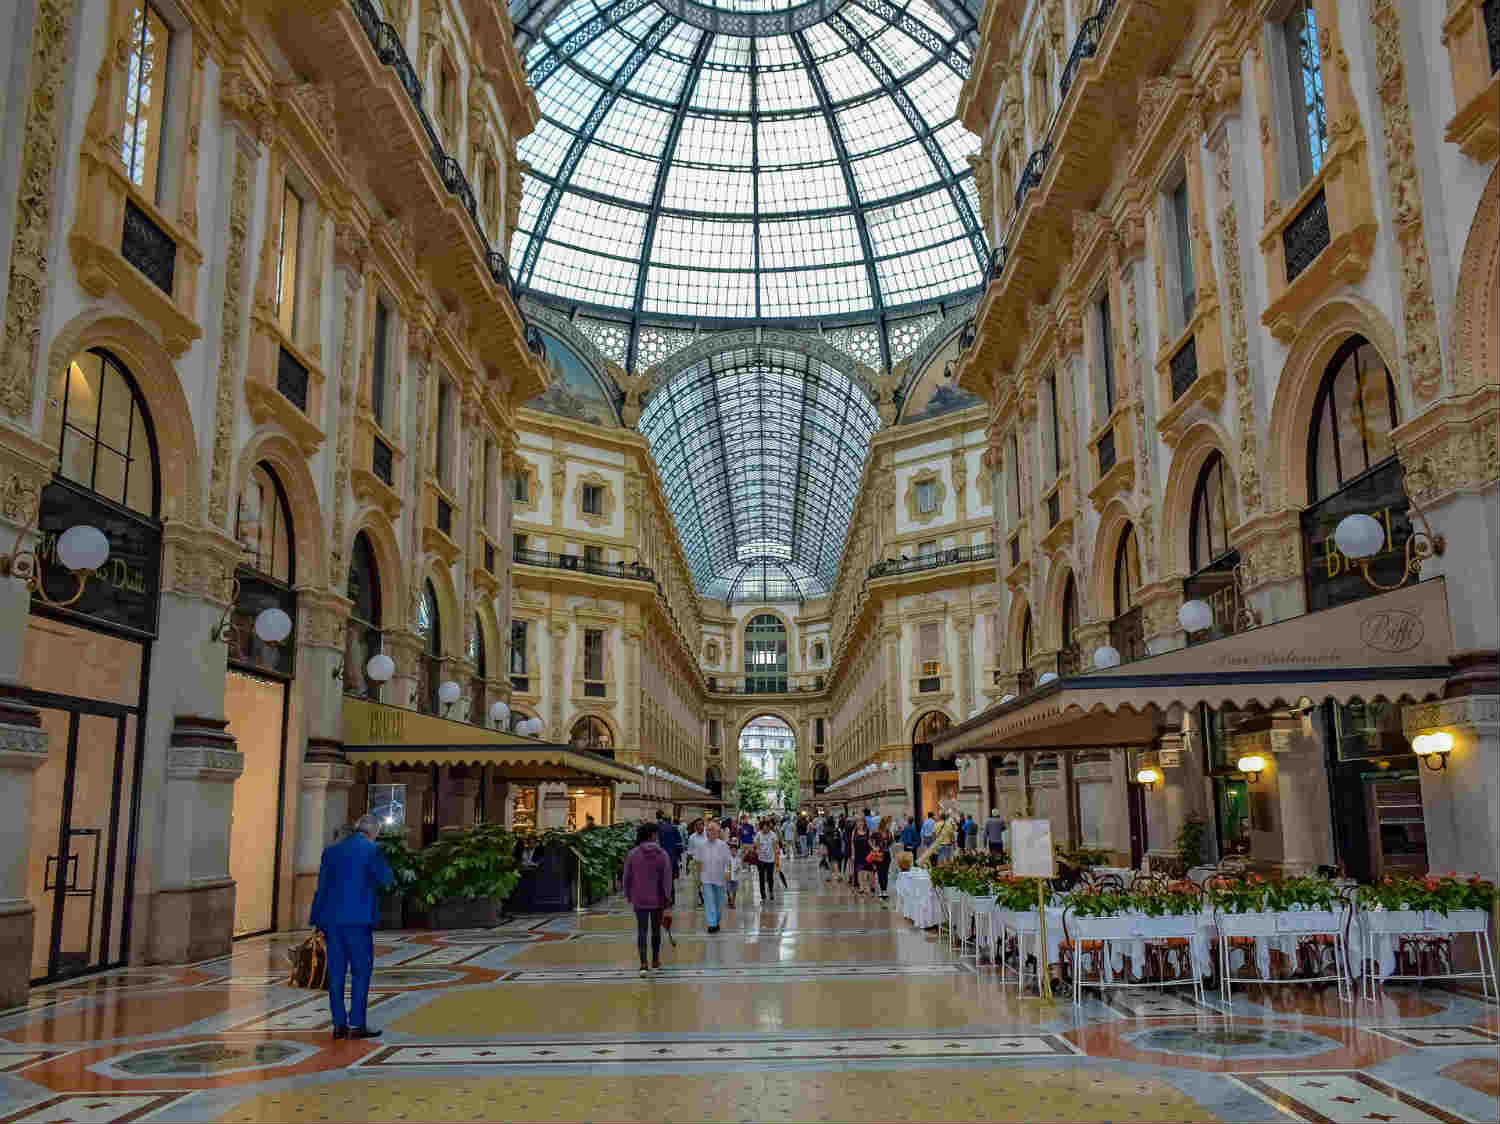 Galleria Vittorio Emanuele ii – Shopping in Milan